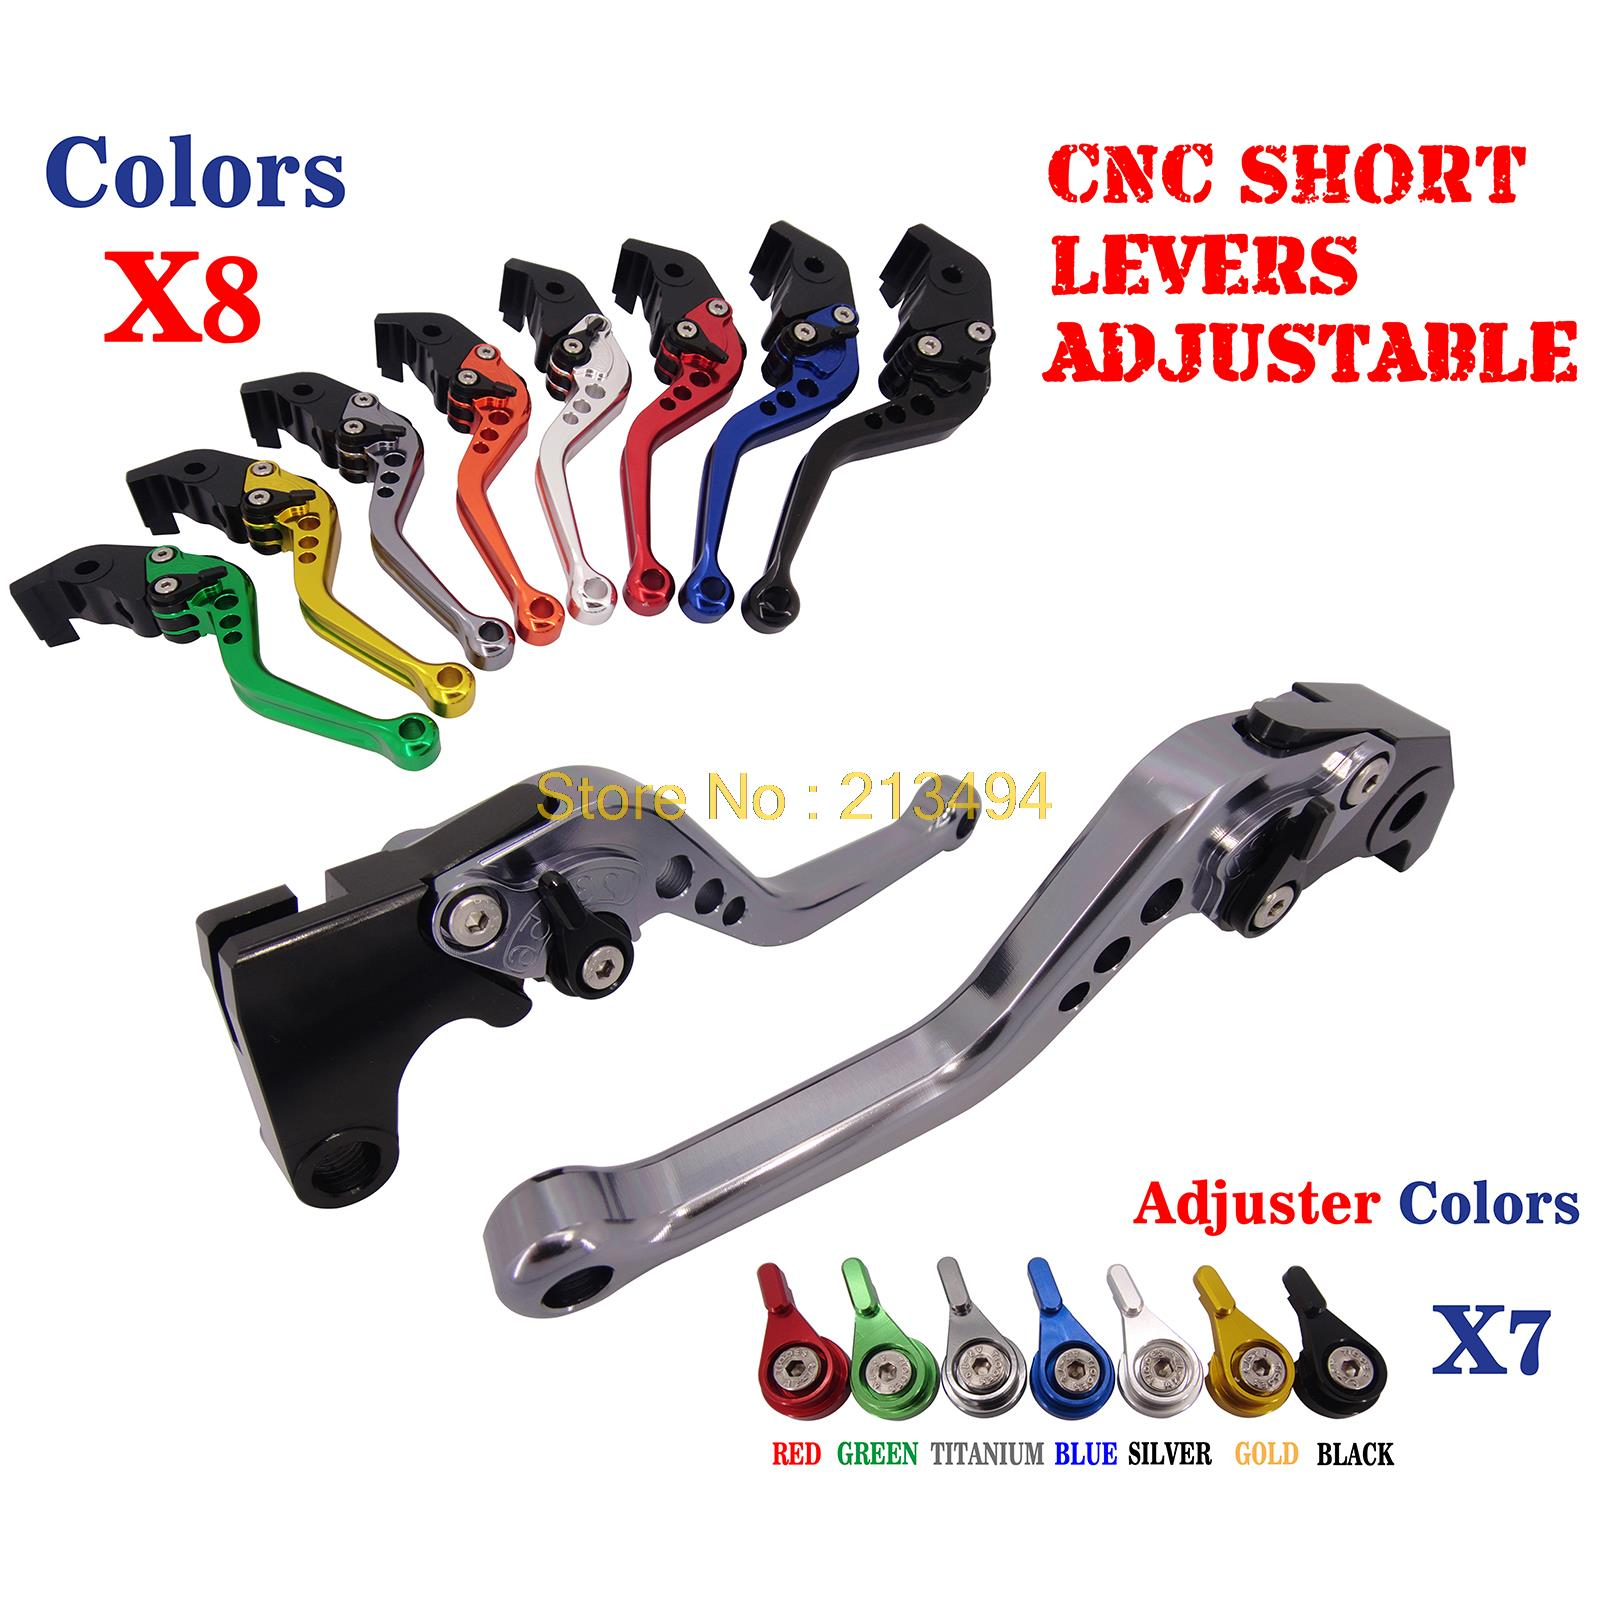 NICECNC Short Brake Clutch Levers For Yamaha FZ1 FZ6 FAZER FZ6R FZ8 XJ6 Diversion XSR700 XSR900 ABS 6mm motorbike body work fairing bolts screwse for yamaha fz1 fazer fz6 fz6r fz8 xj6 diversion triumph tiger 800 1050